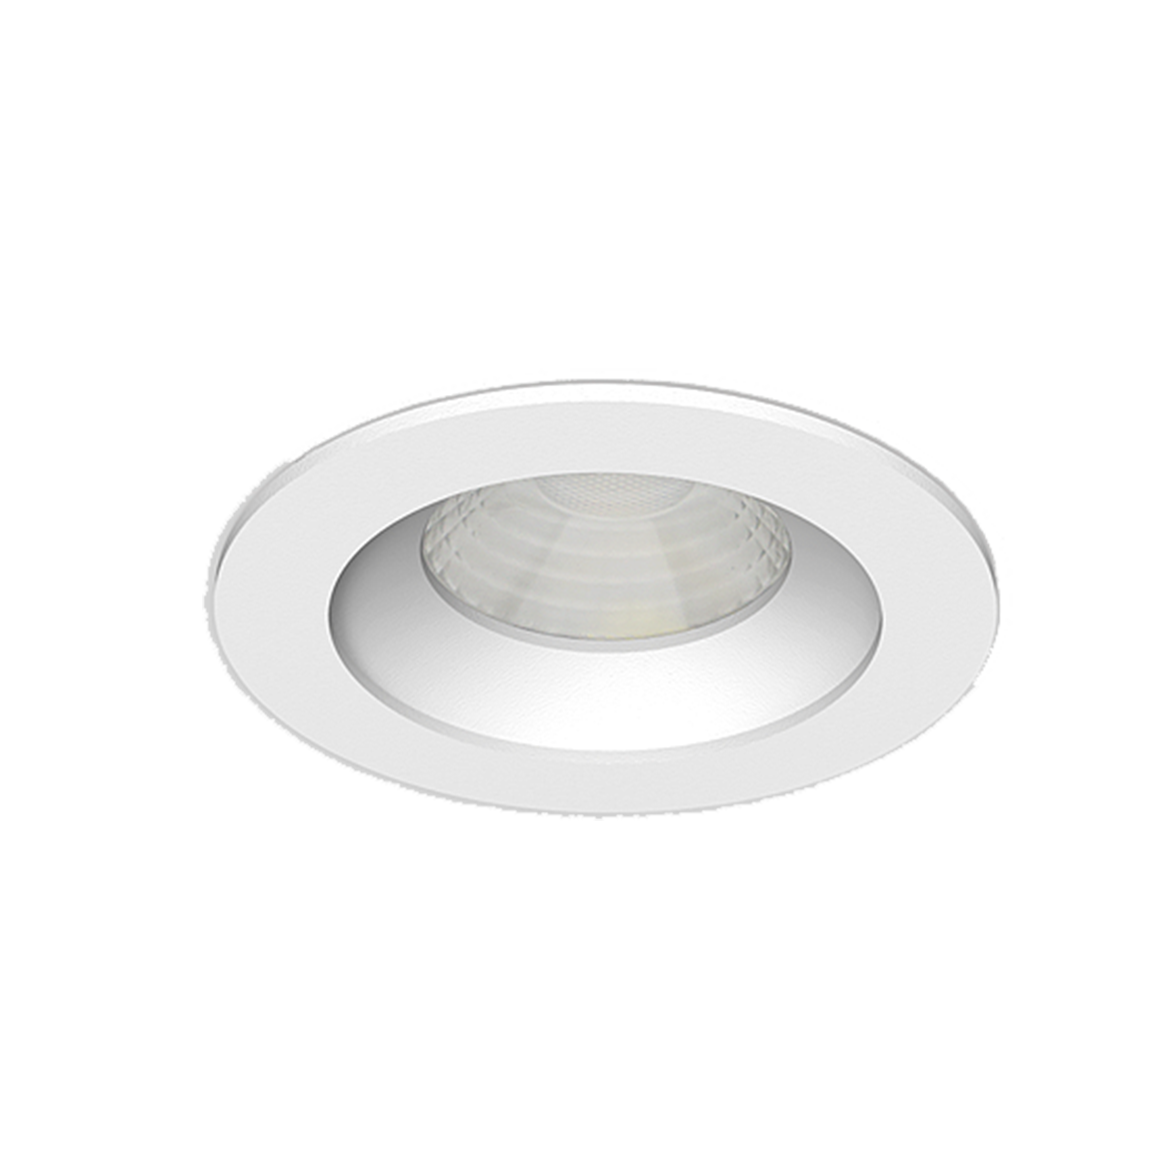 LED Downlight Jaro COB von SML